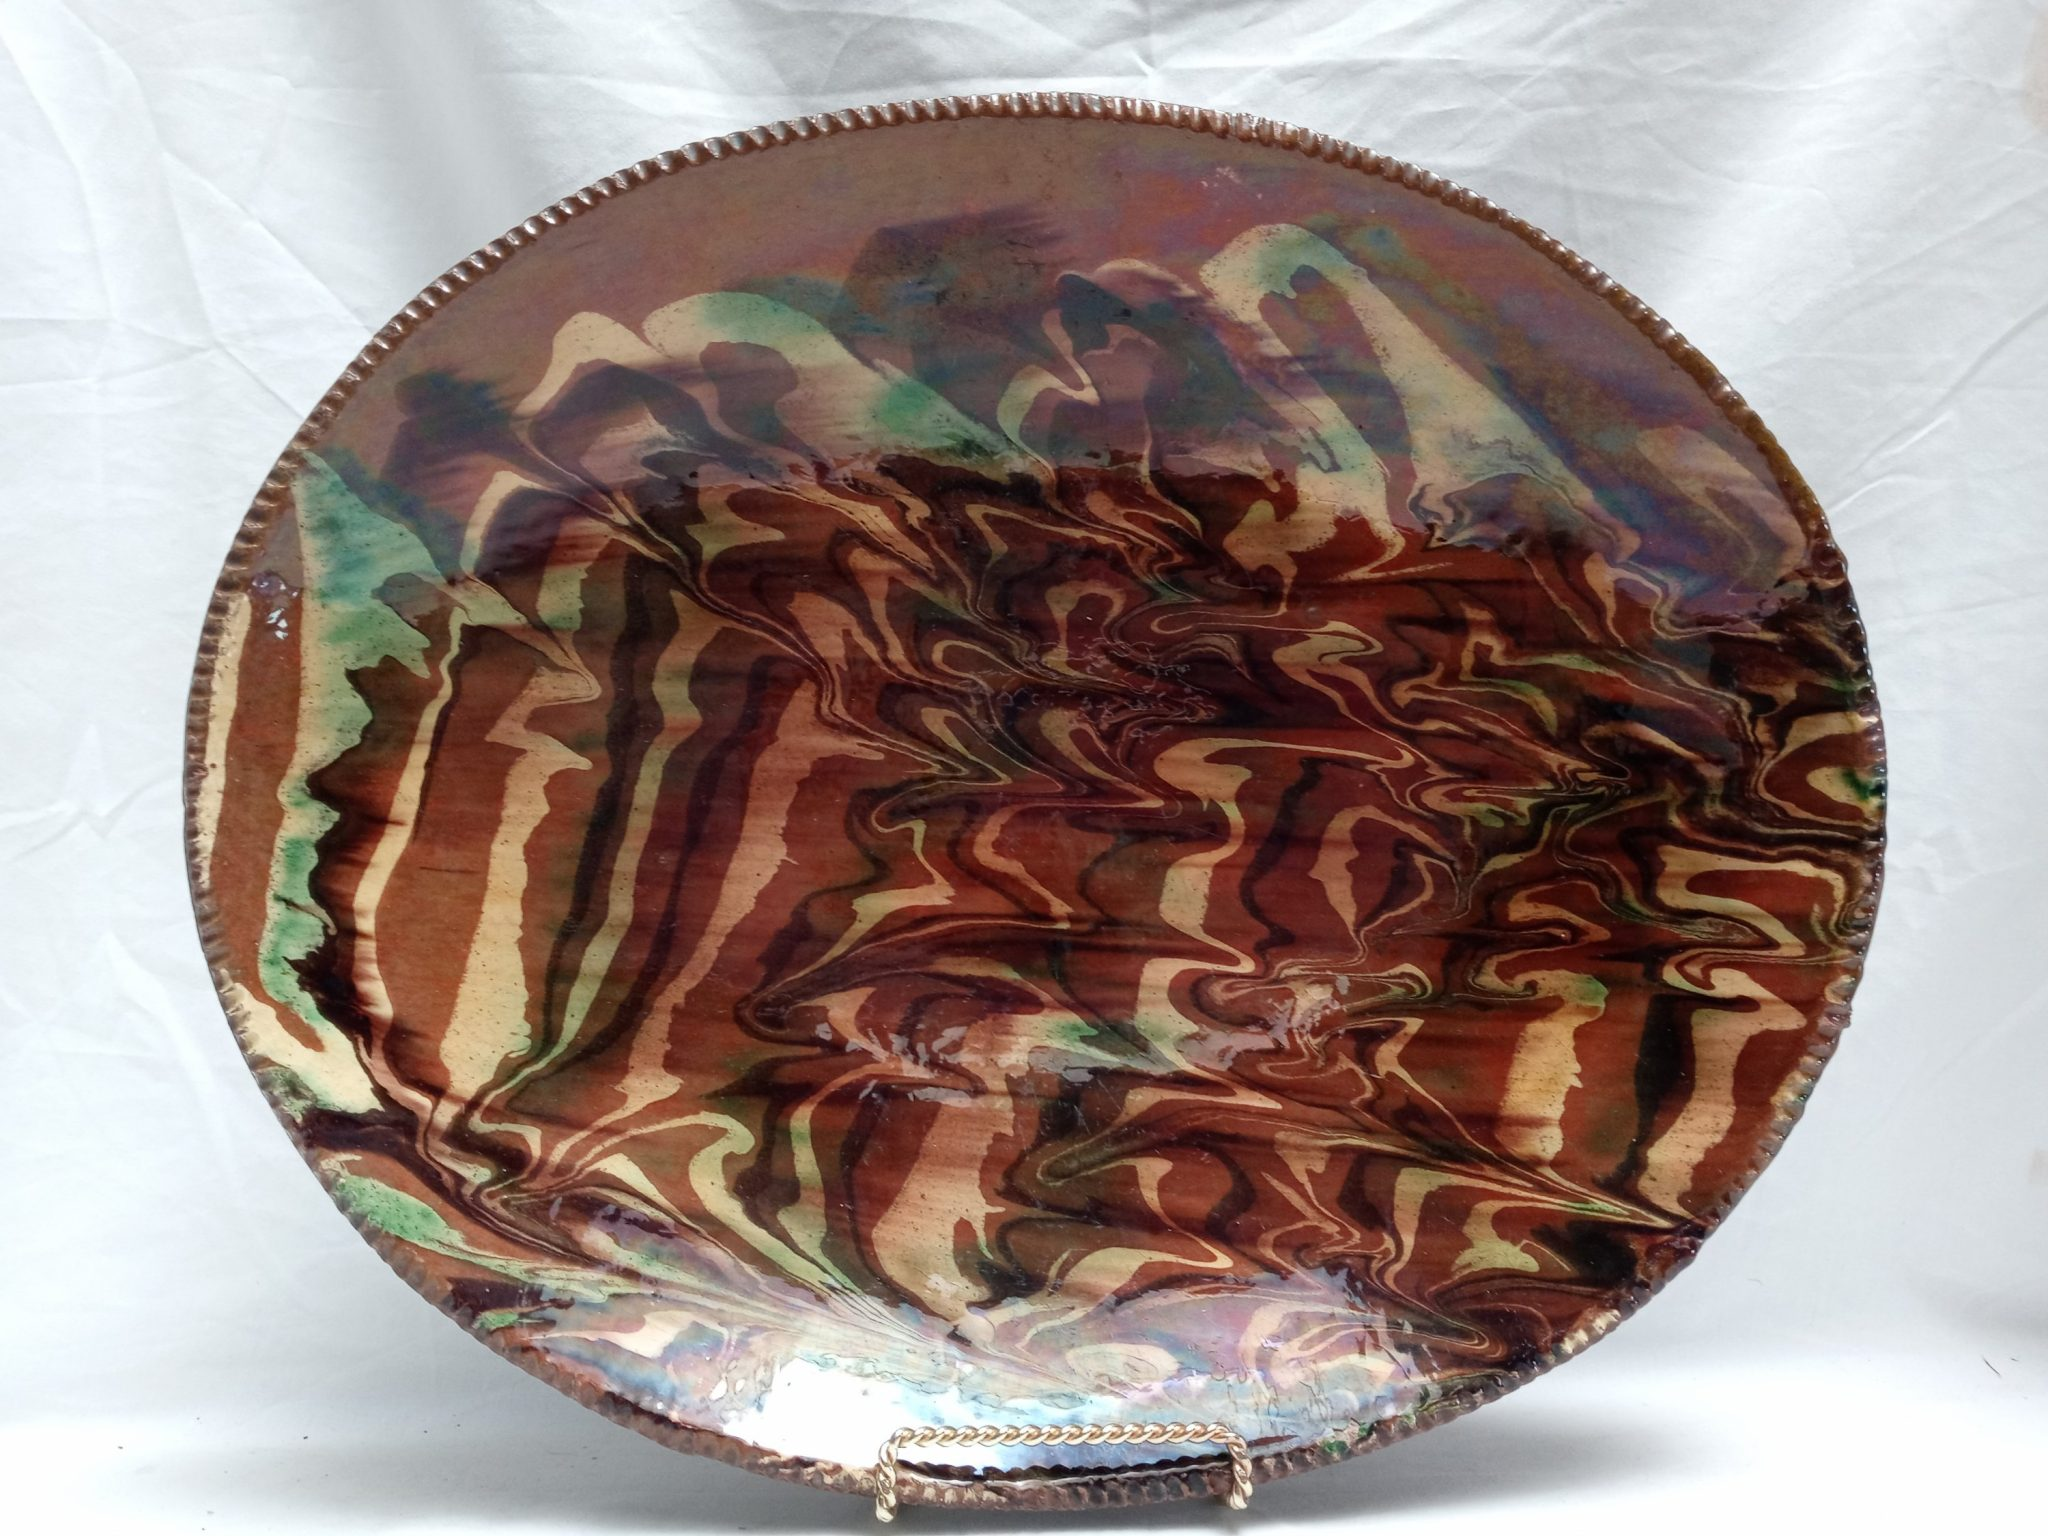 28-18503 Rare Redware Pottery loaf dish, marbleized slip decoration yellow, brown, green. Pro. Conn. Image